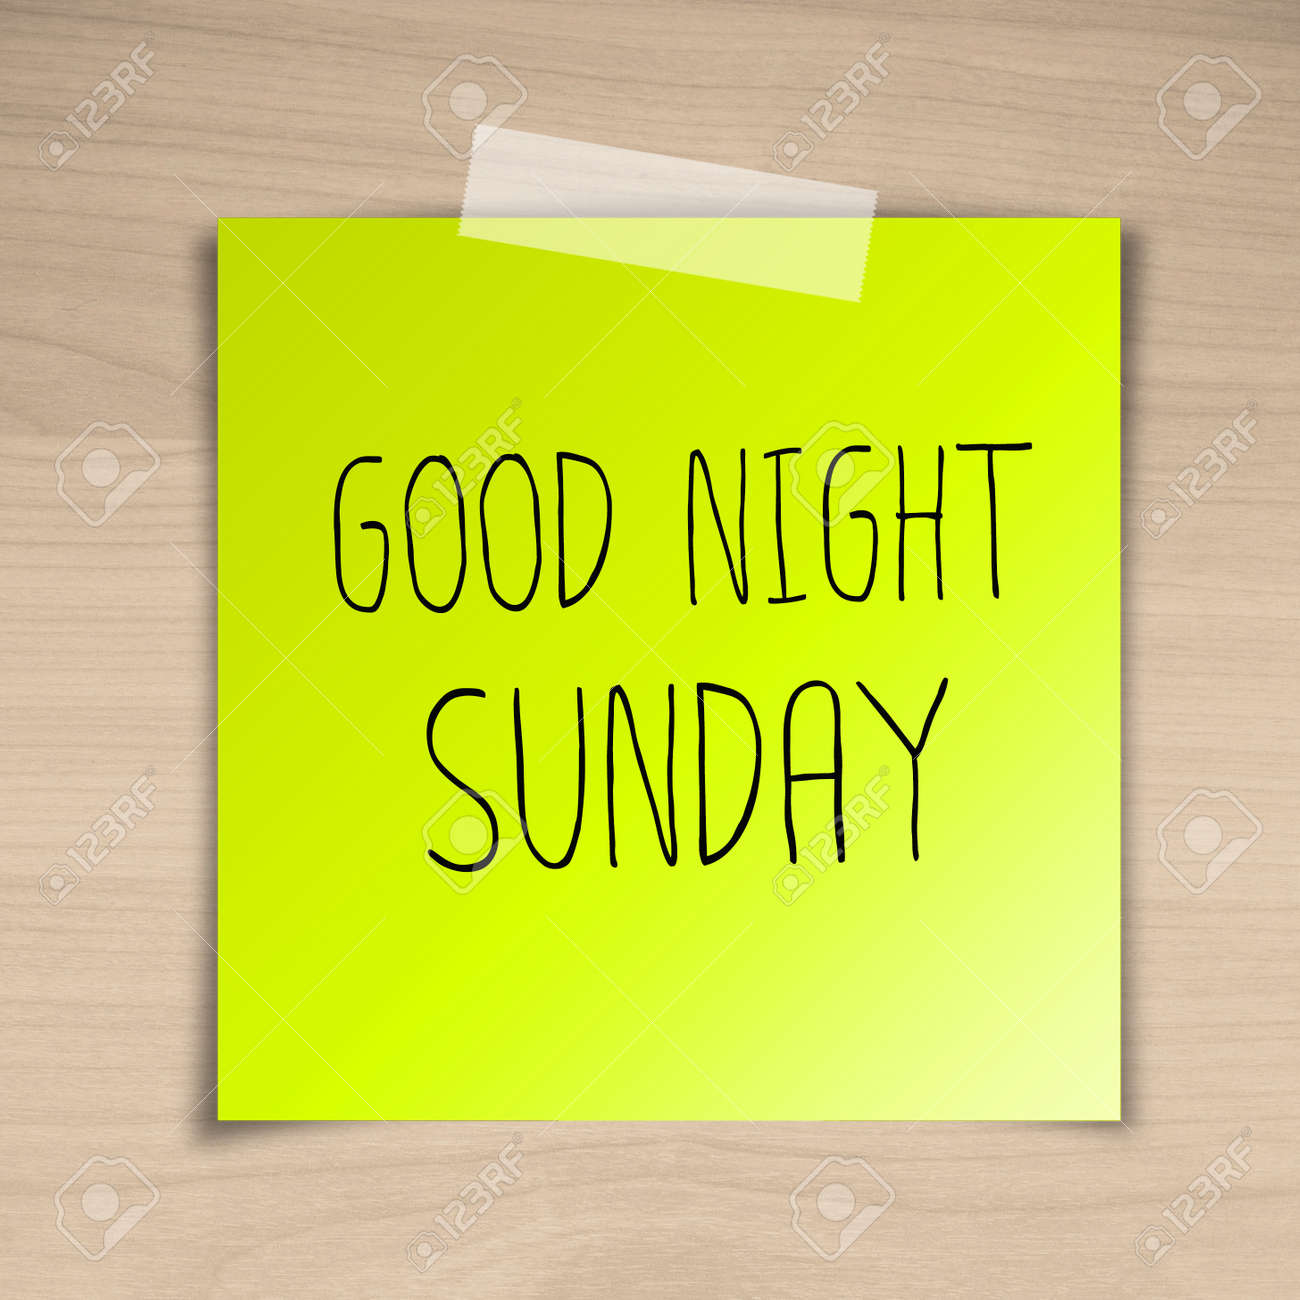 Good Night Sunday Sticky Paper On Brown Wood Background Texture